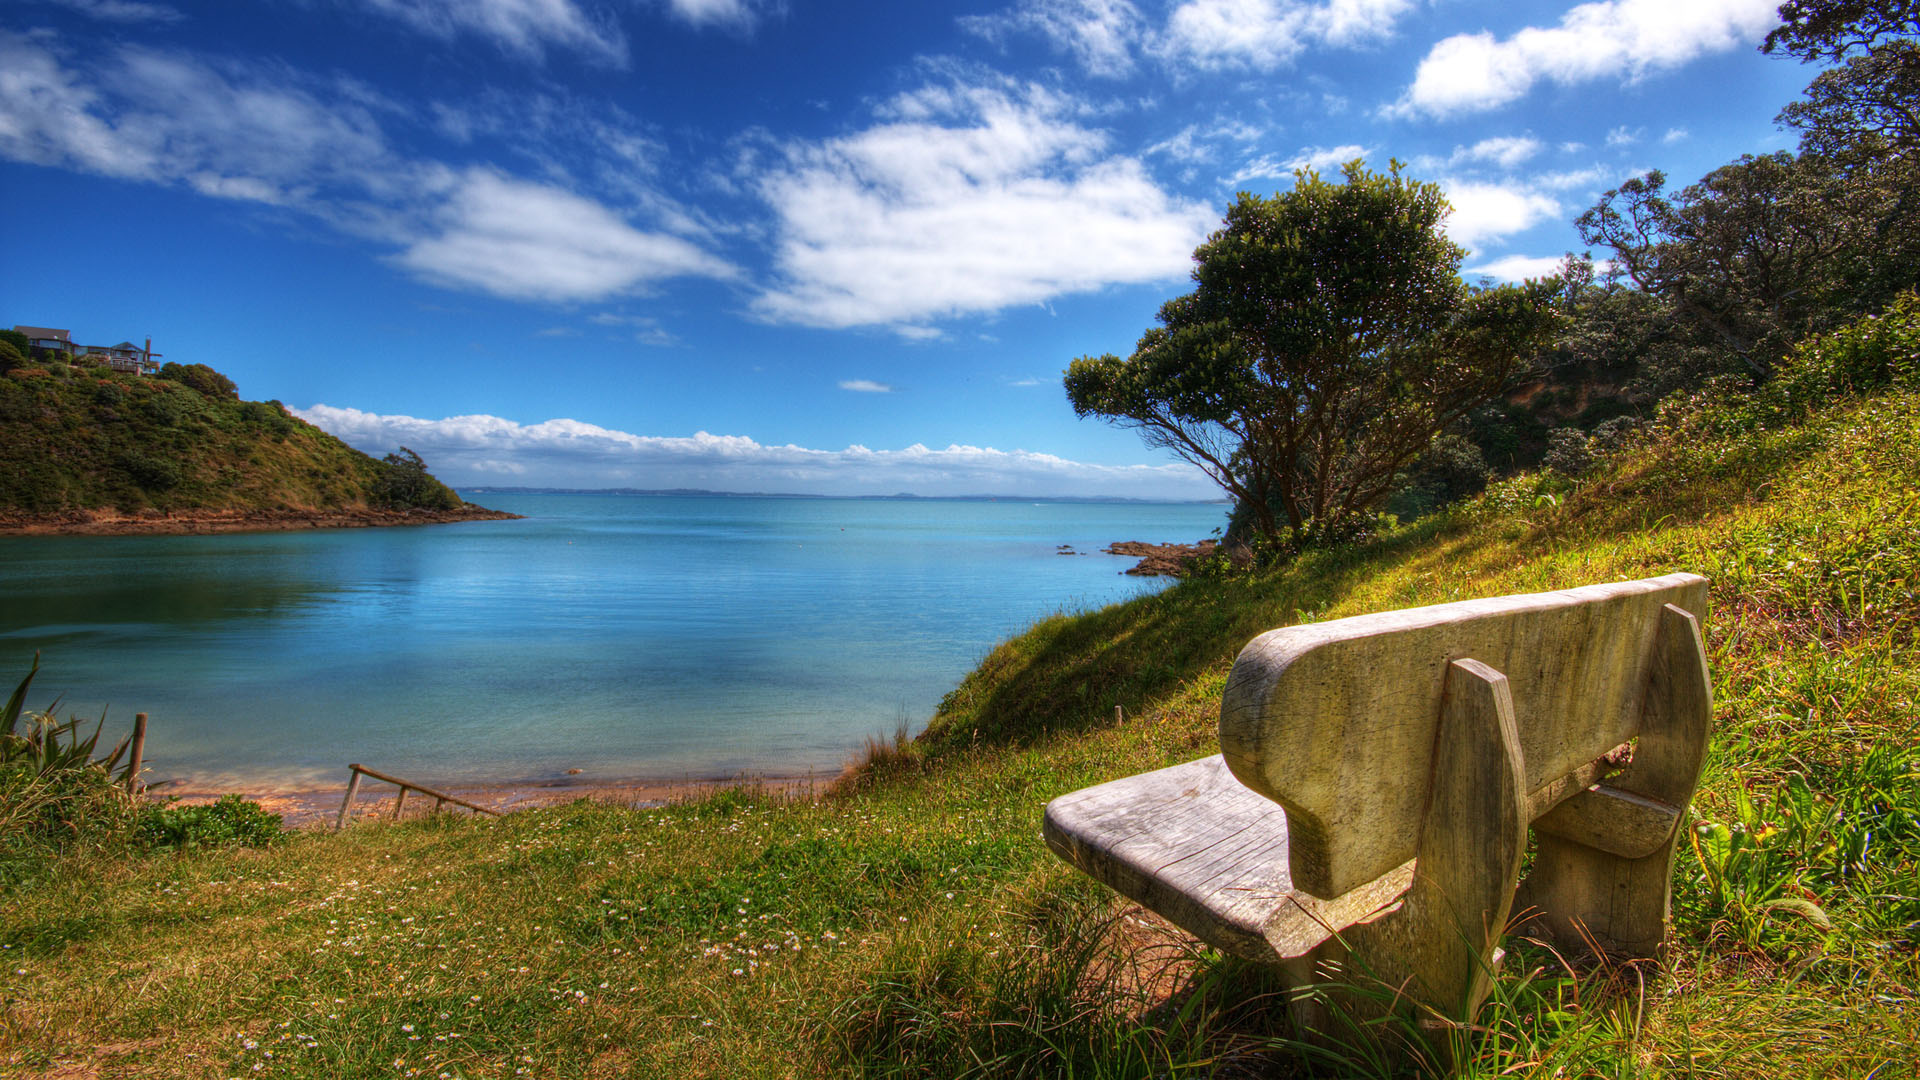 click to free download the wallpaper--Free Download Natural Scenery Picture - The Blue Sky and the Blue Sea, a Stone Chair by Its Side, Everything is Shadowed 1920X1080 free wallpaper download